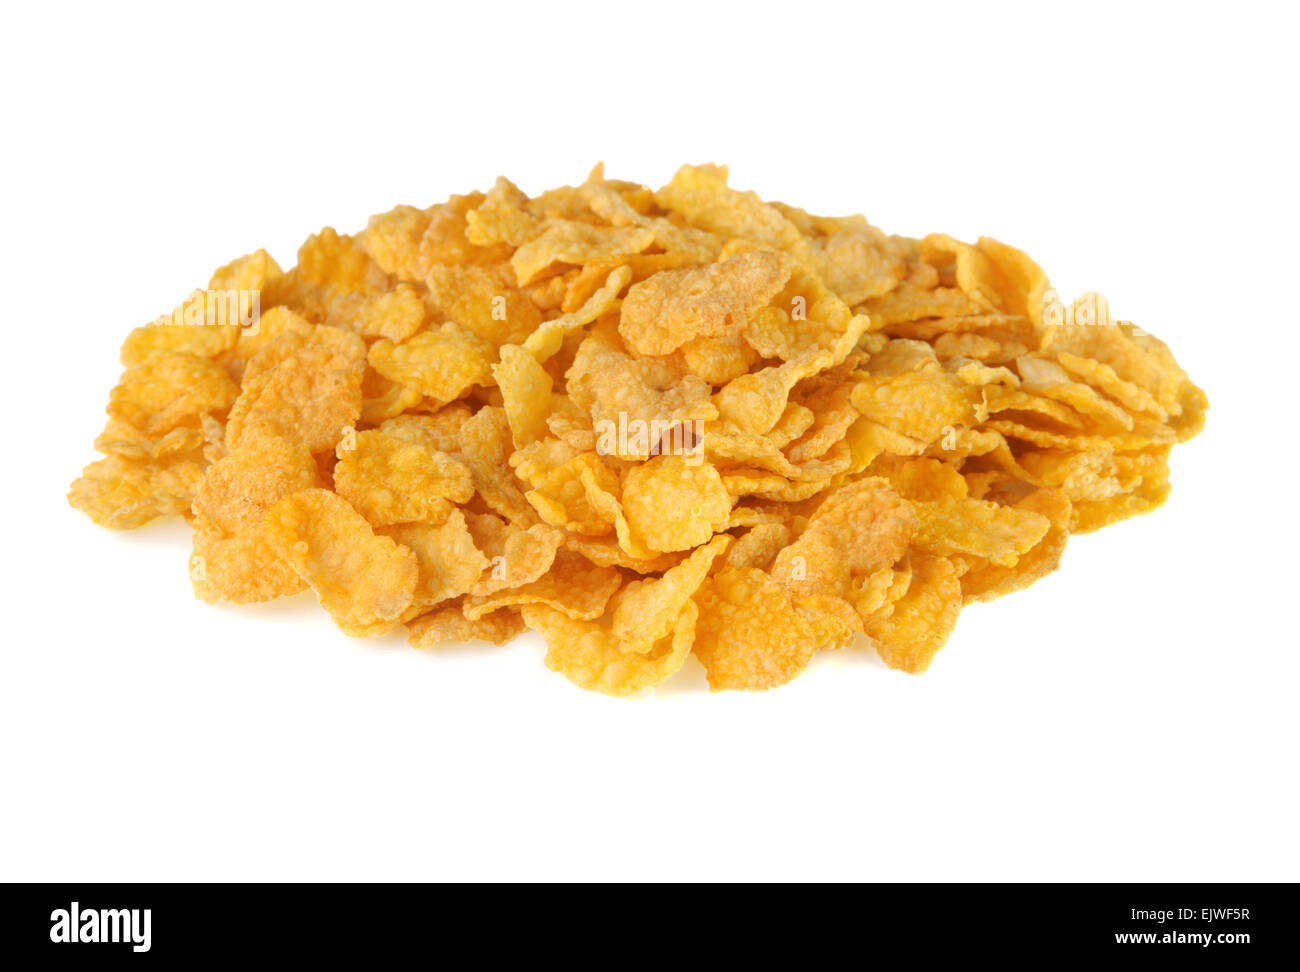 Pile of corn flakes on a white background - Stock Image